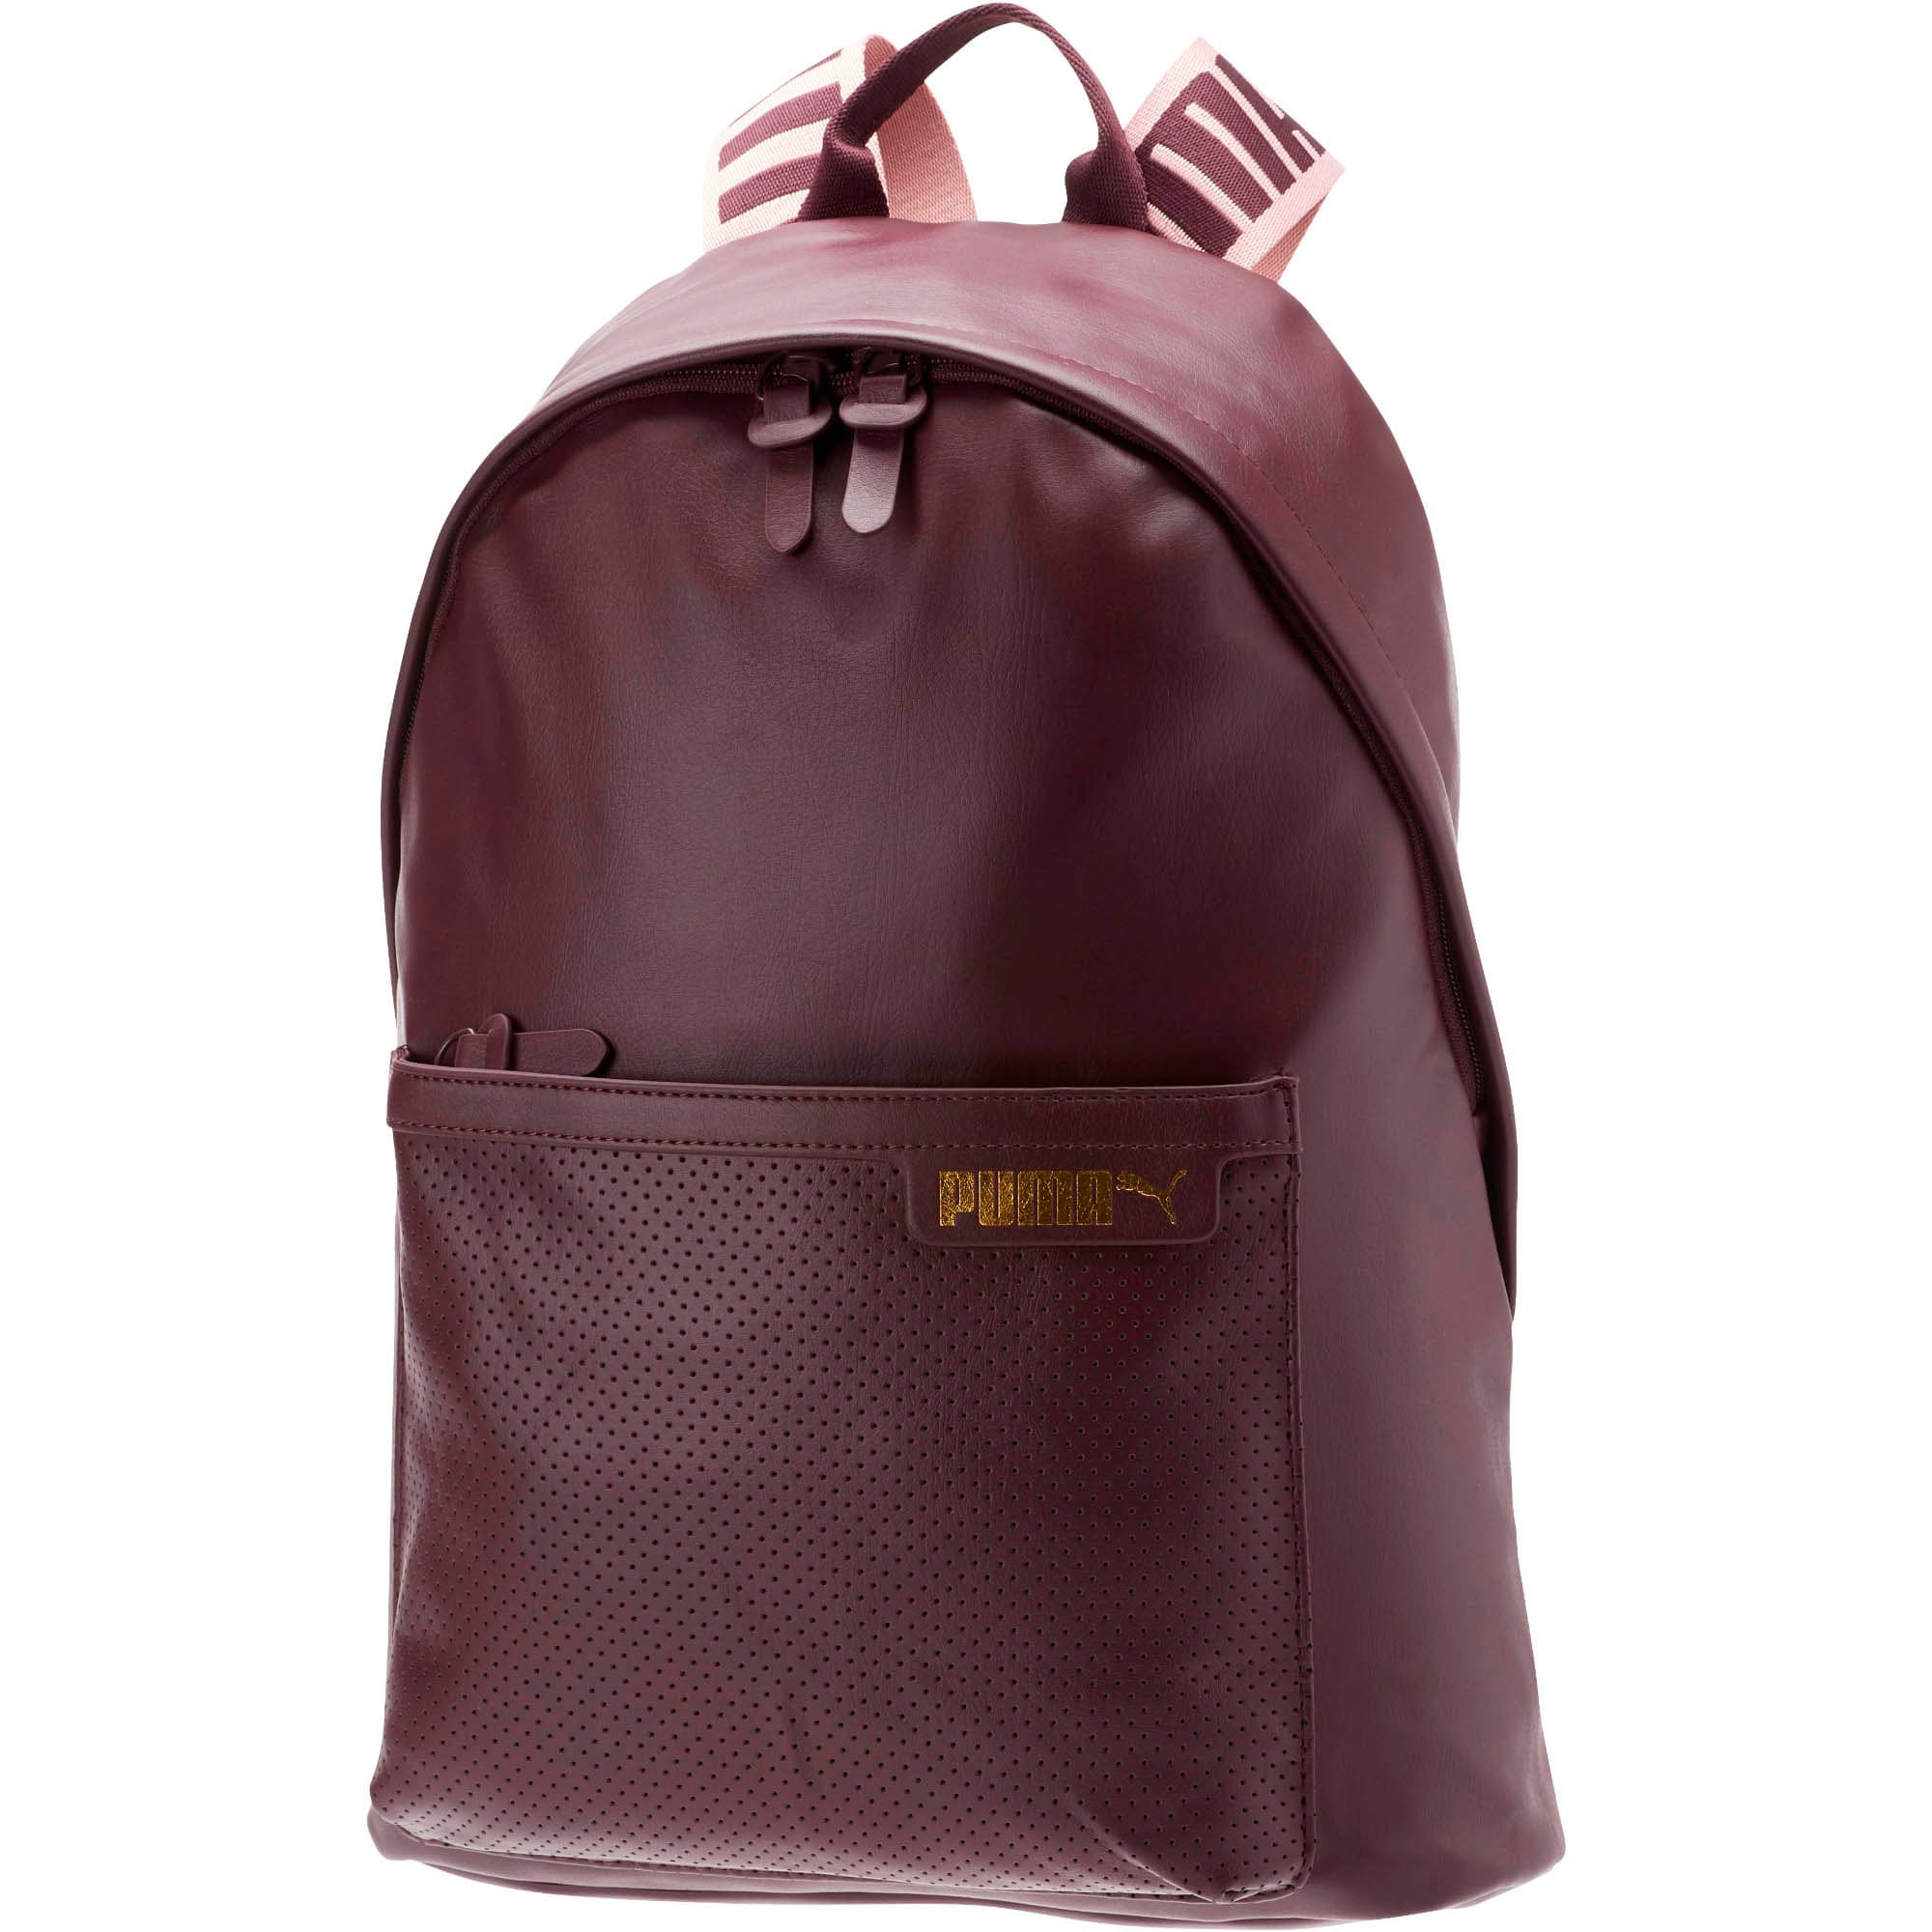 Thumbnail 1 of Prime Cali Backpack, Vineyard Wine, medium